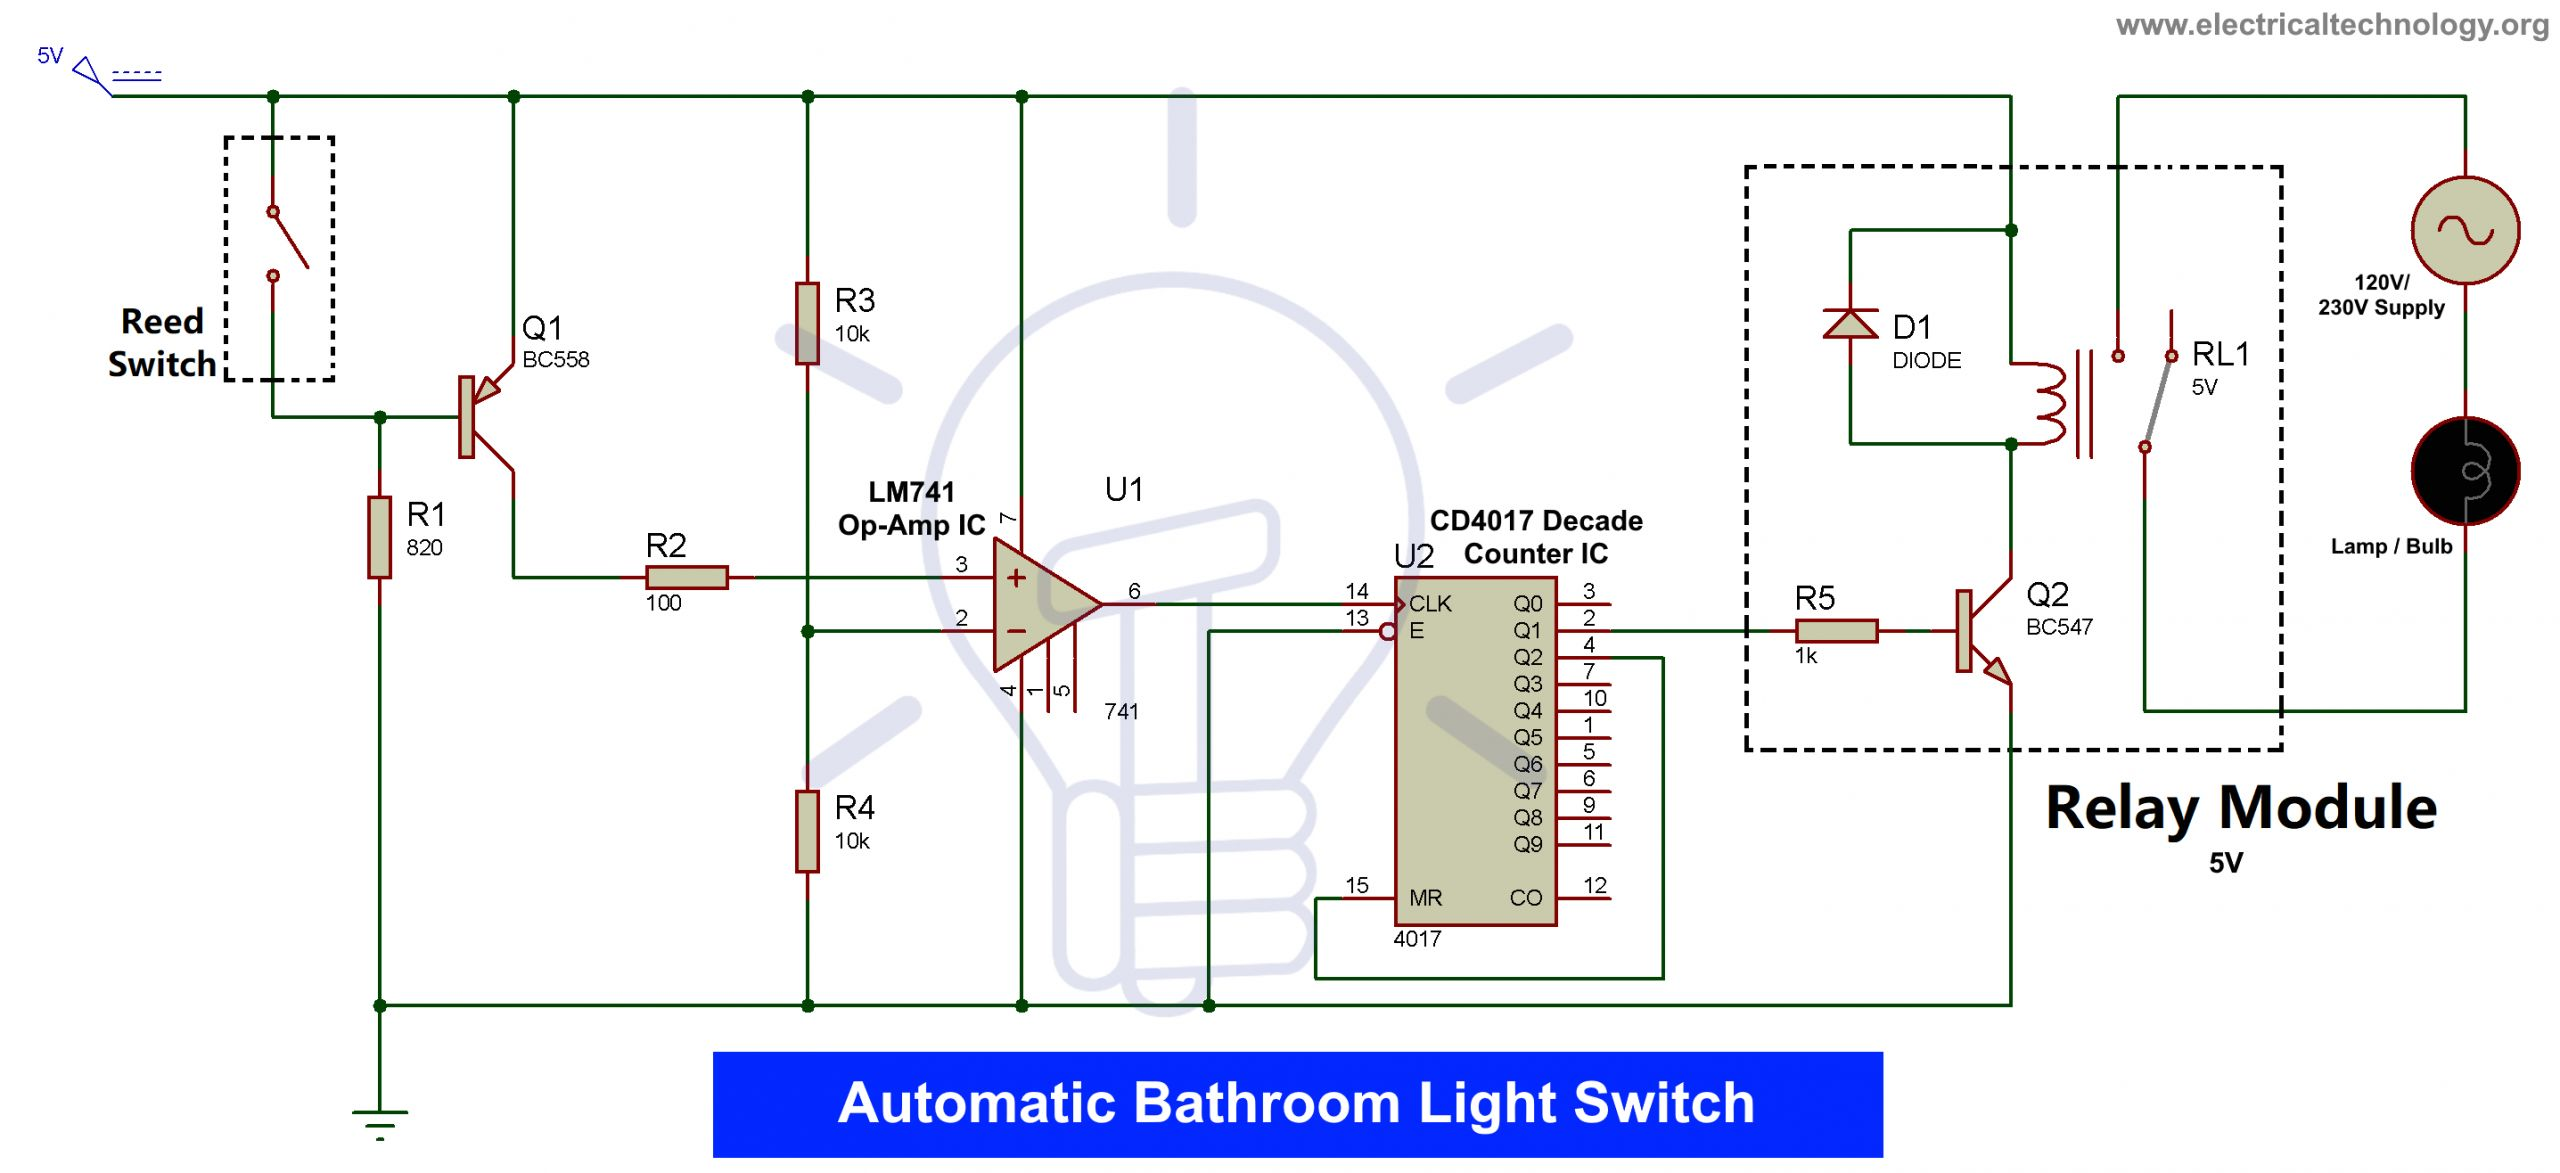 automatic bathroom light switch circuit diagram png